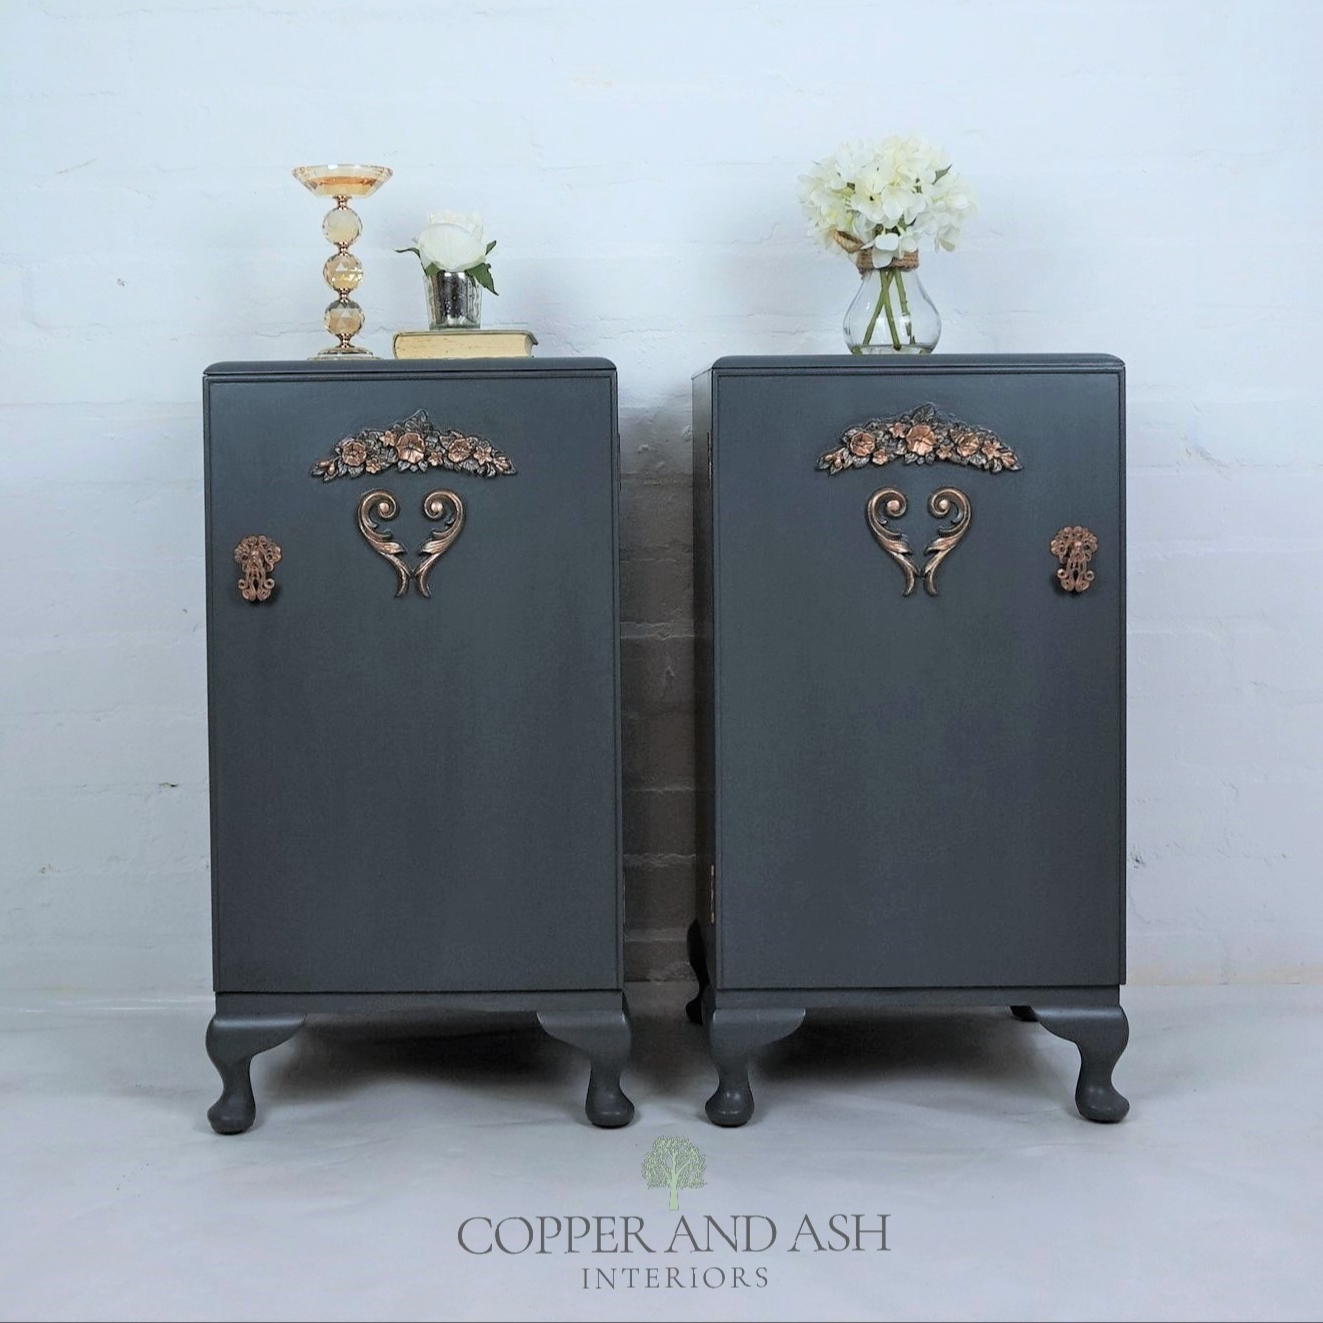 The House of Upcycling: Refurbished French-Style Bedside Cabinets